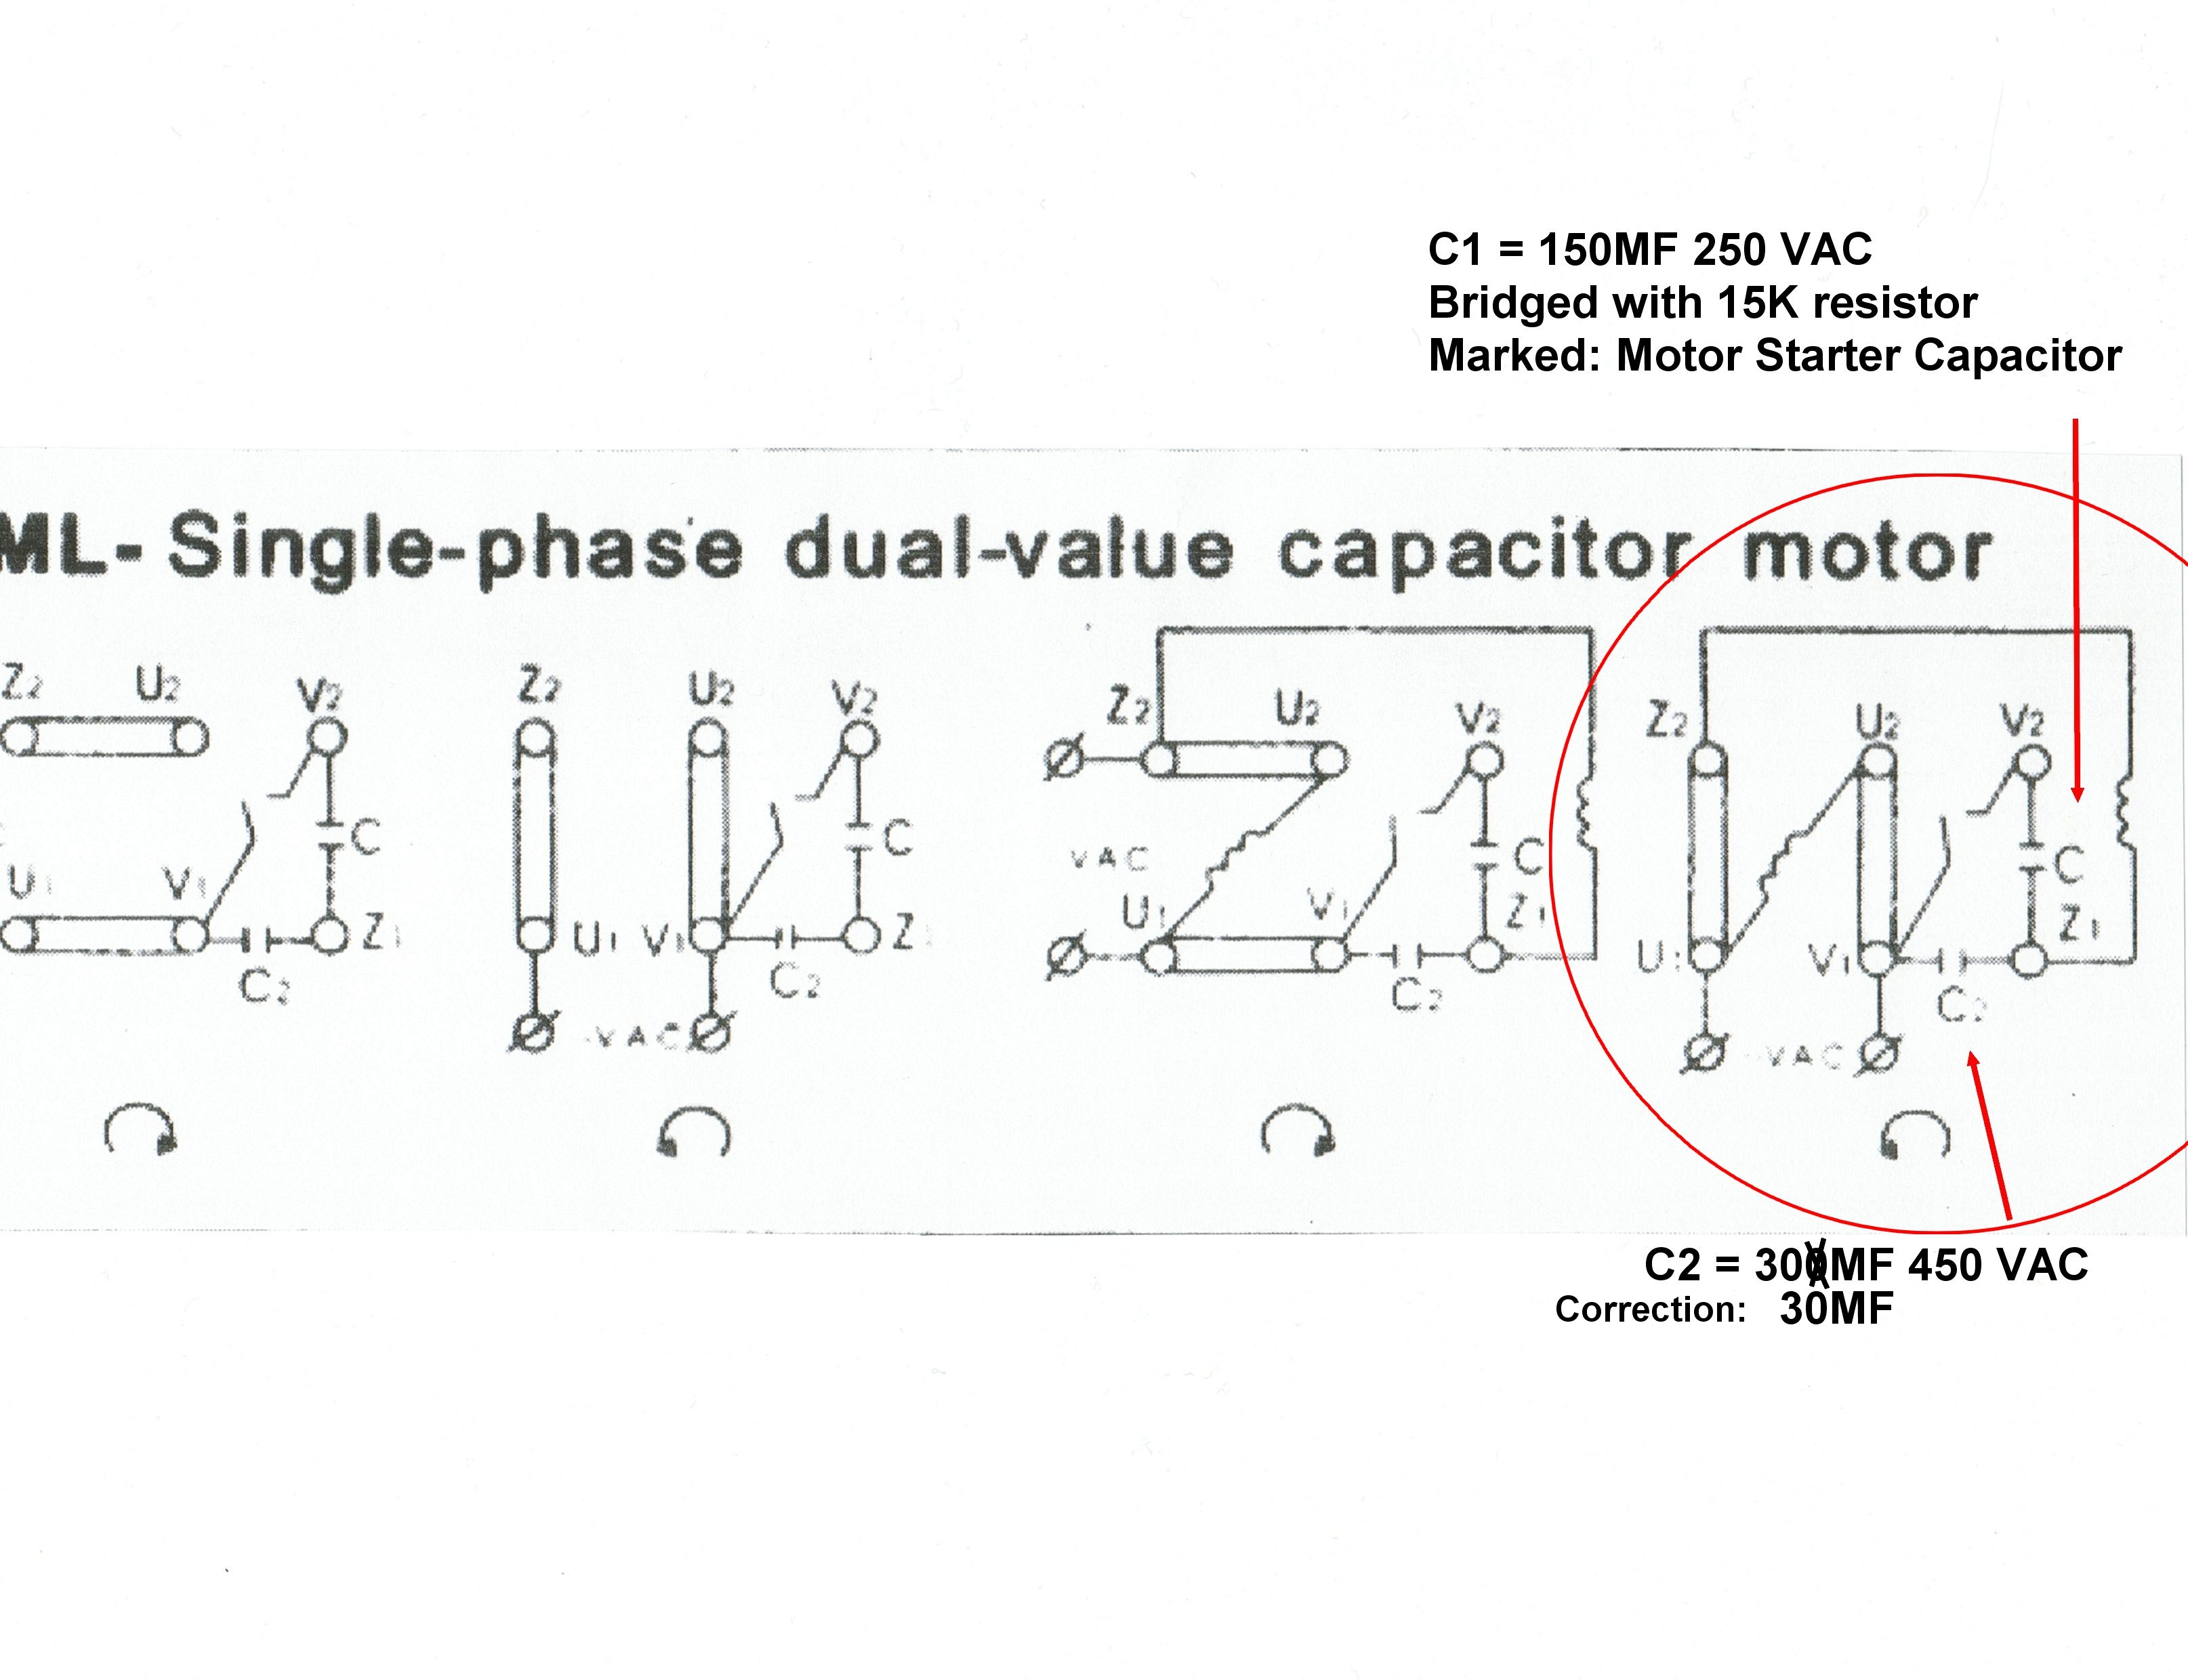 2 1 Lead 3 Phase Generator Wiring Diagram Master 4 Wire To 220v Receptacle Induction Motor 220 Diagrams Scematic Rh 37 Jessicadonath De Internal Steam